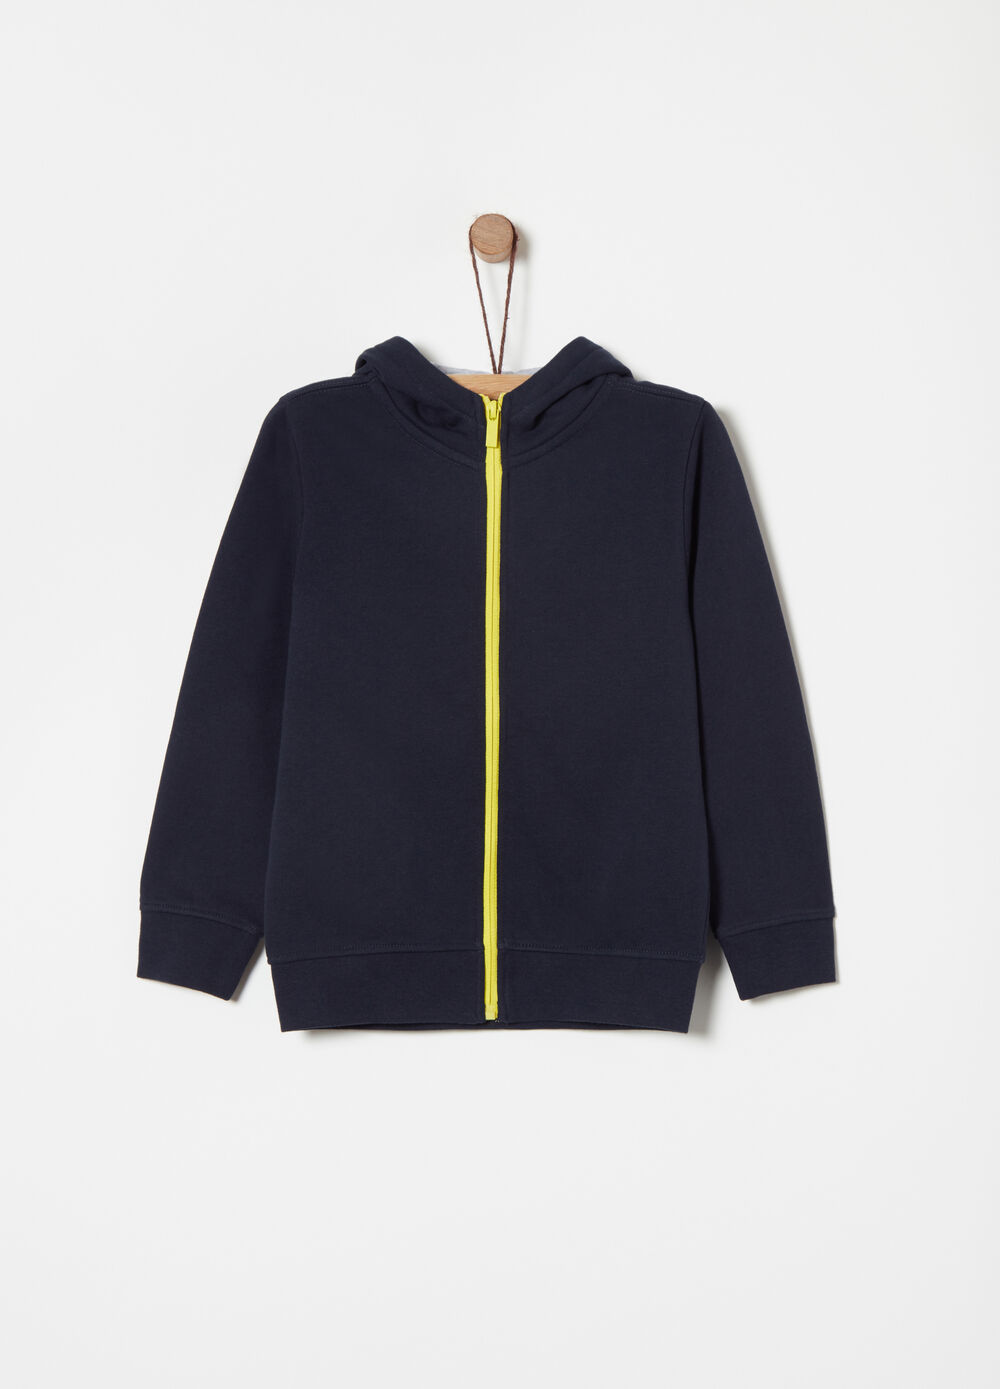 Full-zip sweatshirt in heavy winter fabric with print on the back